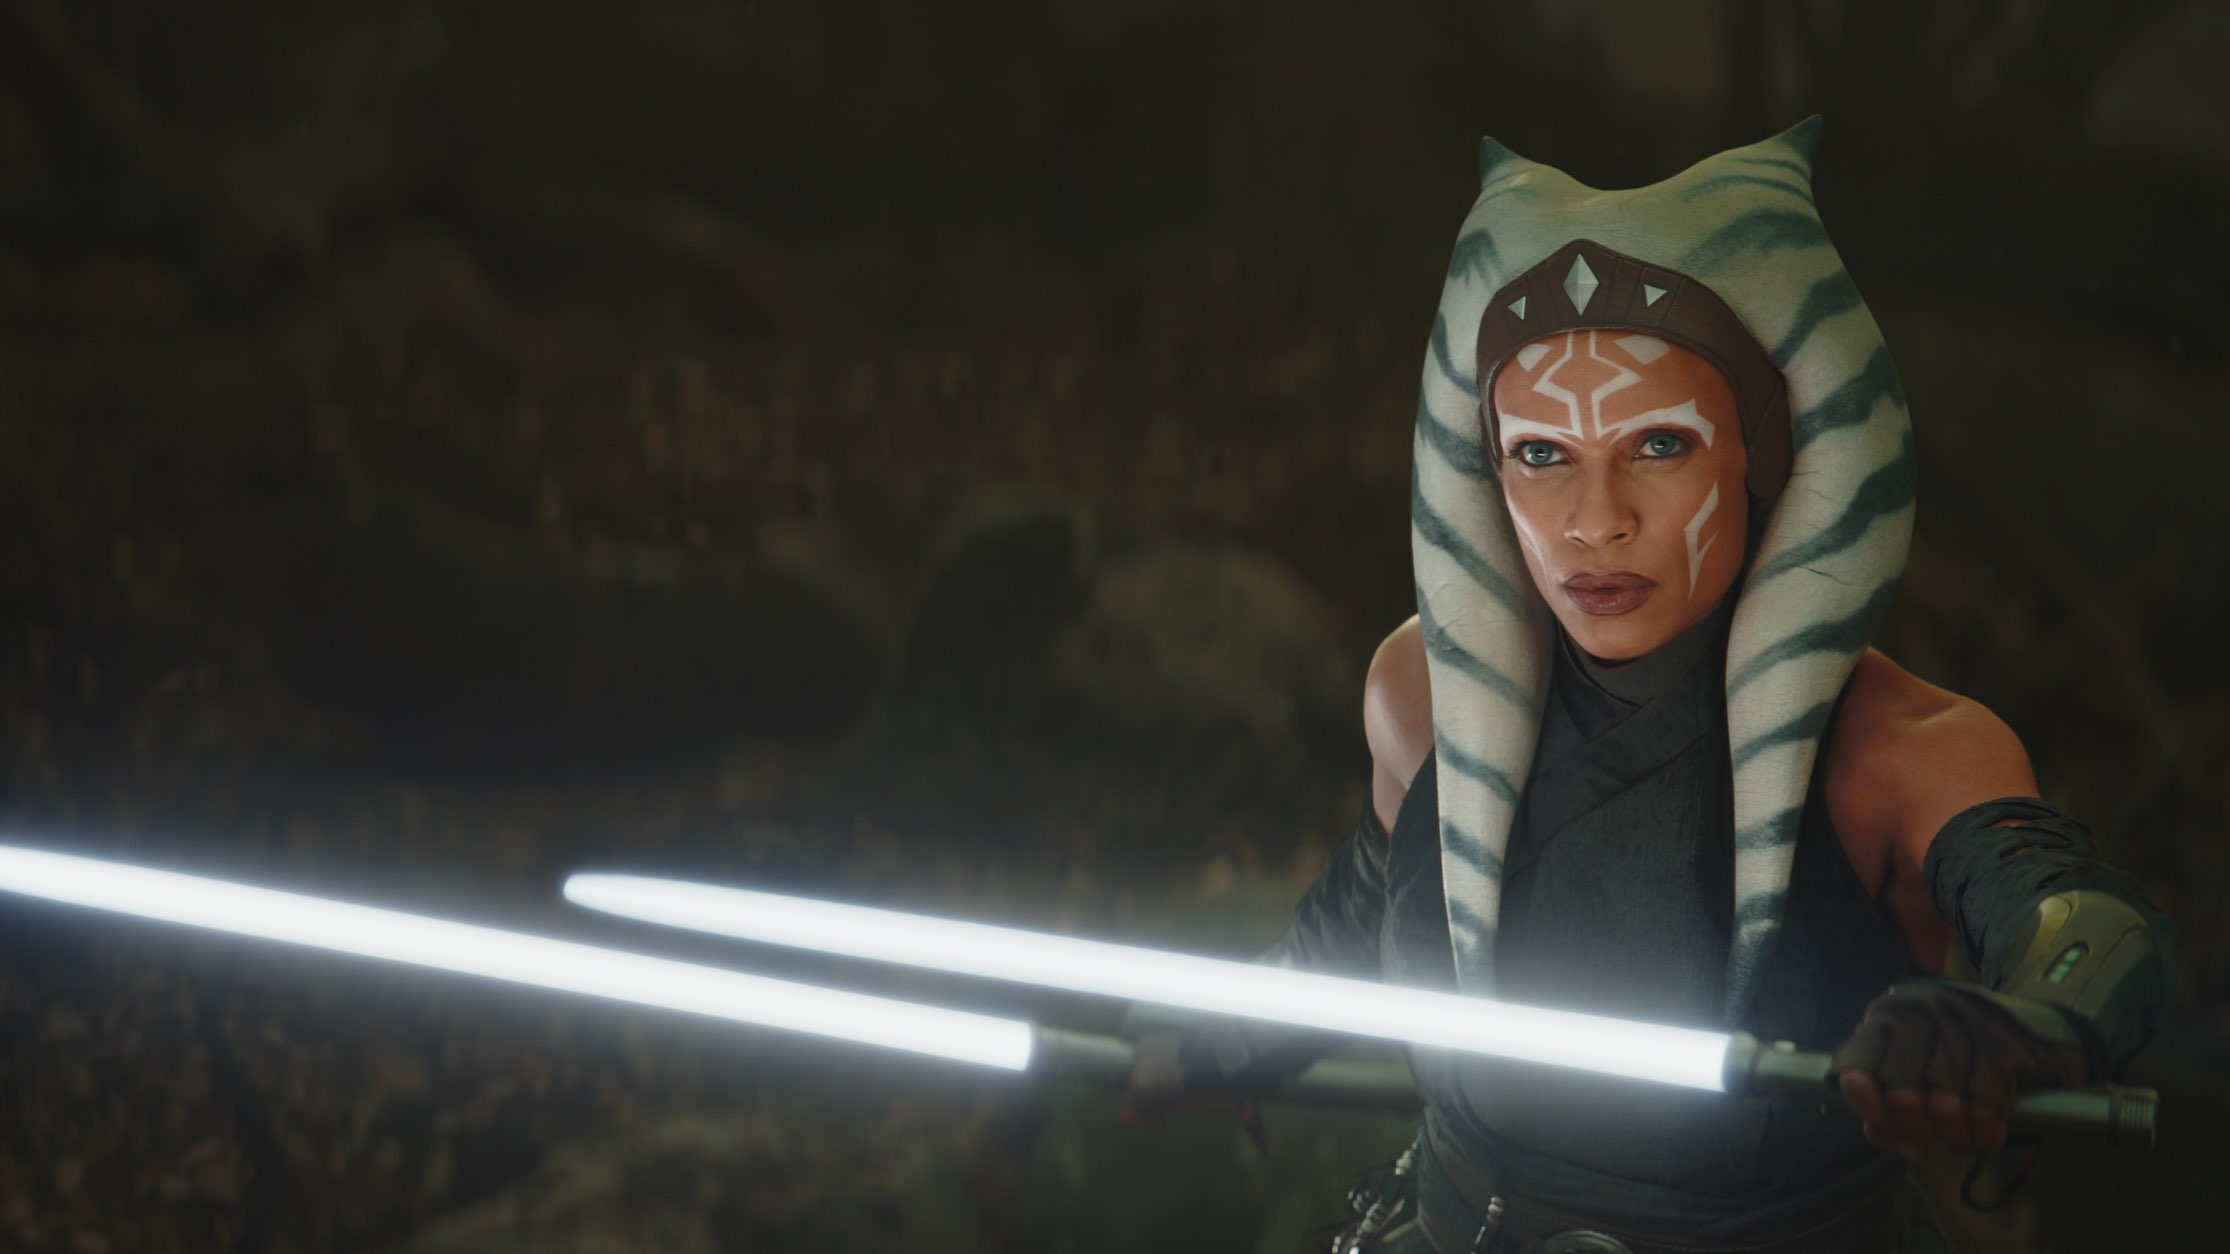 Star Wars' Spinoffs on Ahsoka Tano and More Coming to Disney Plus - Variety